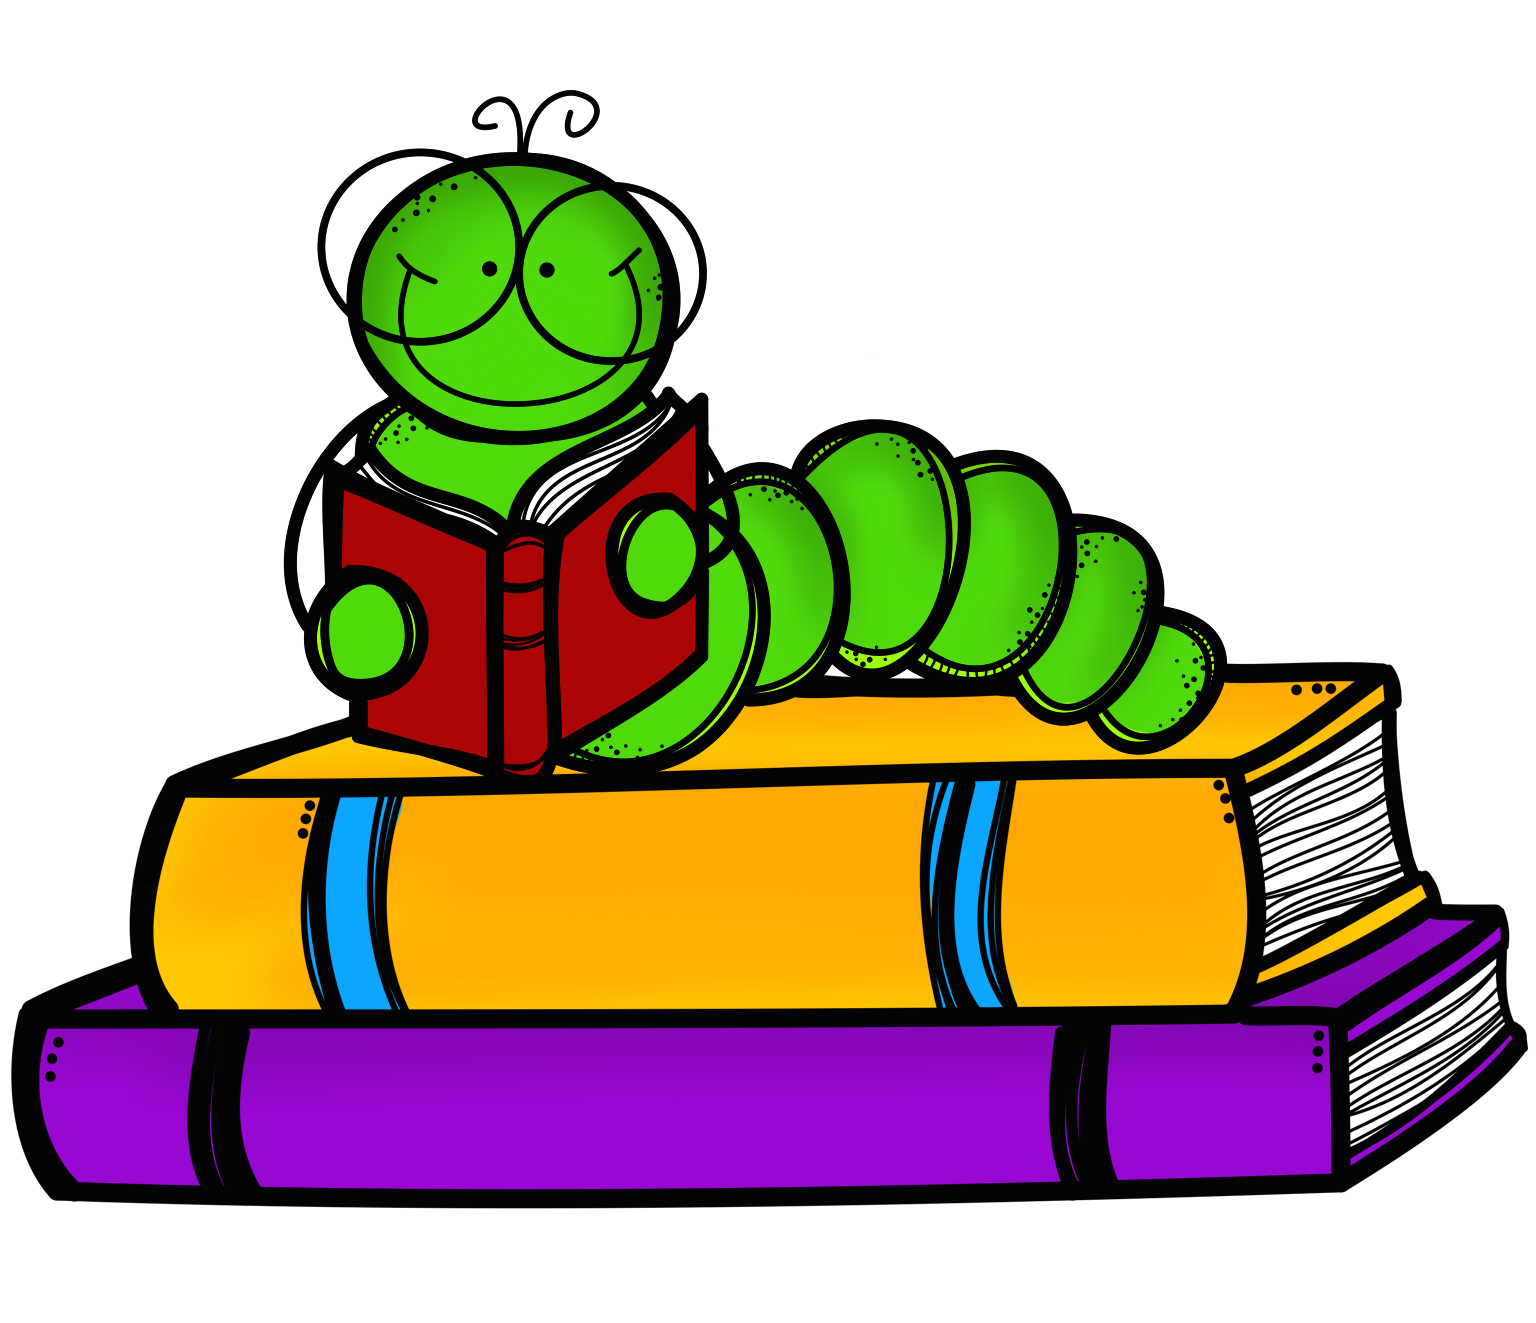 Library book clip art clipart images gallery for free.